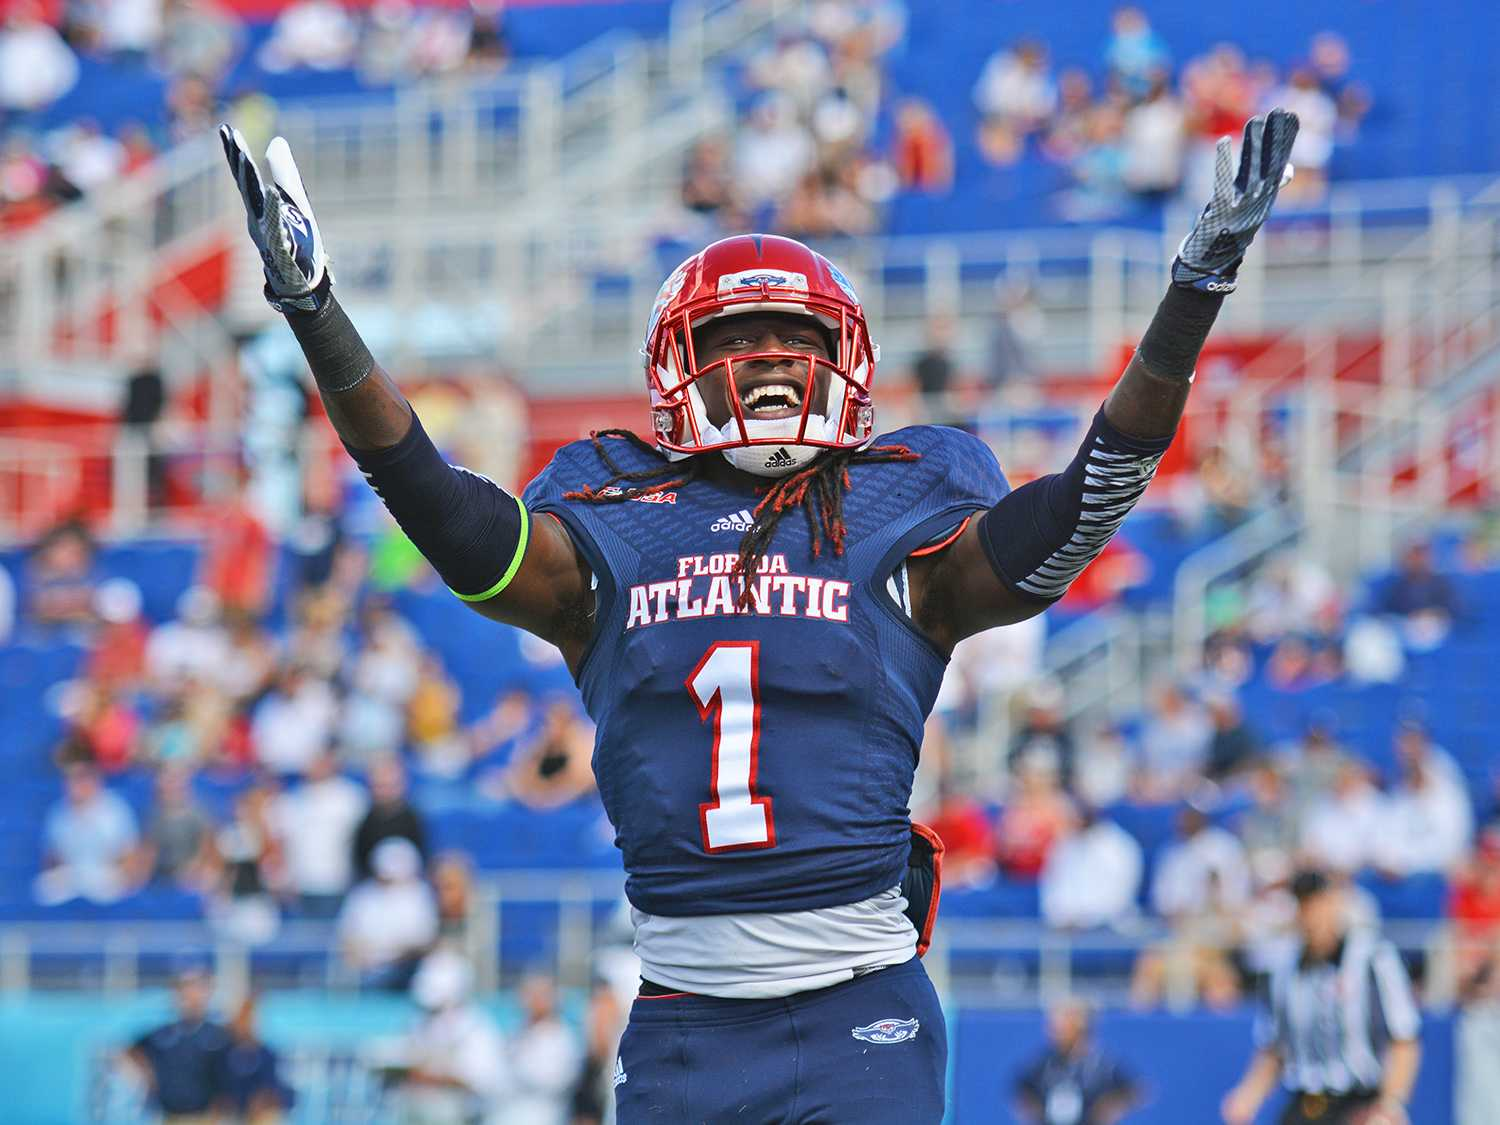 Senior wide receiver Lucky Whitehead celebrates his 73 yard punt return touchdown in the first quarter of Saturday's game.